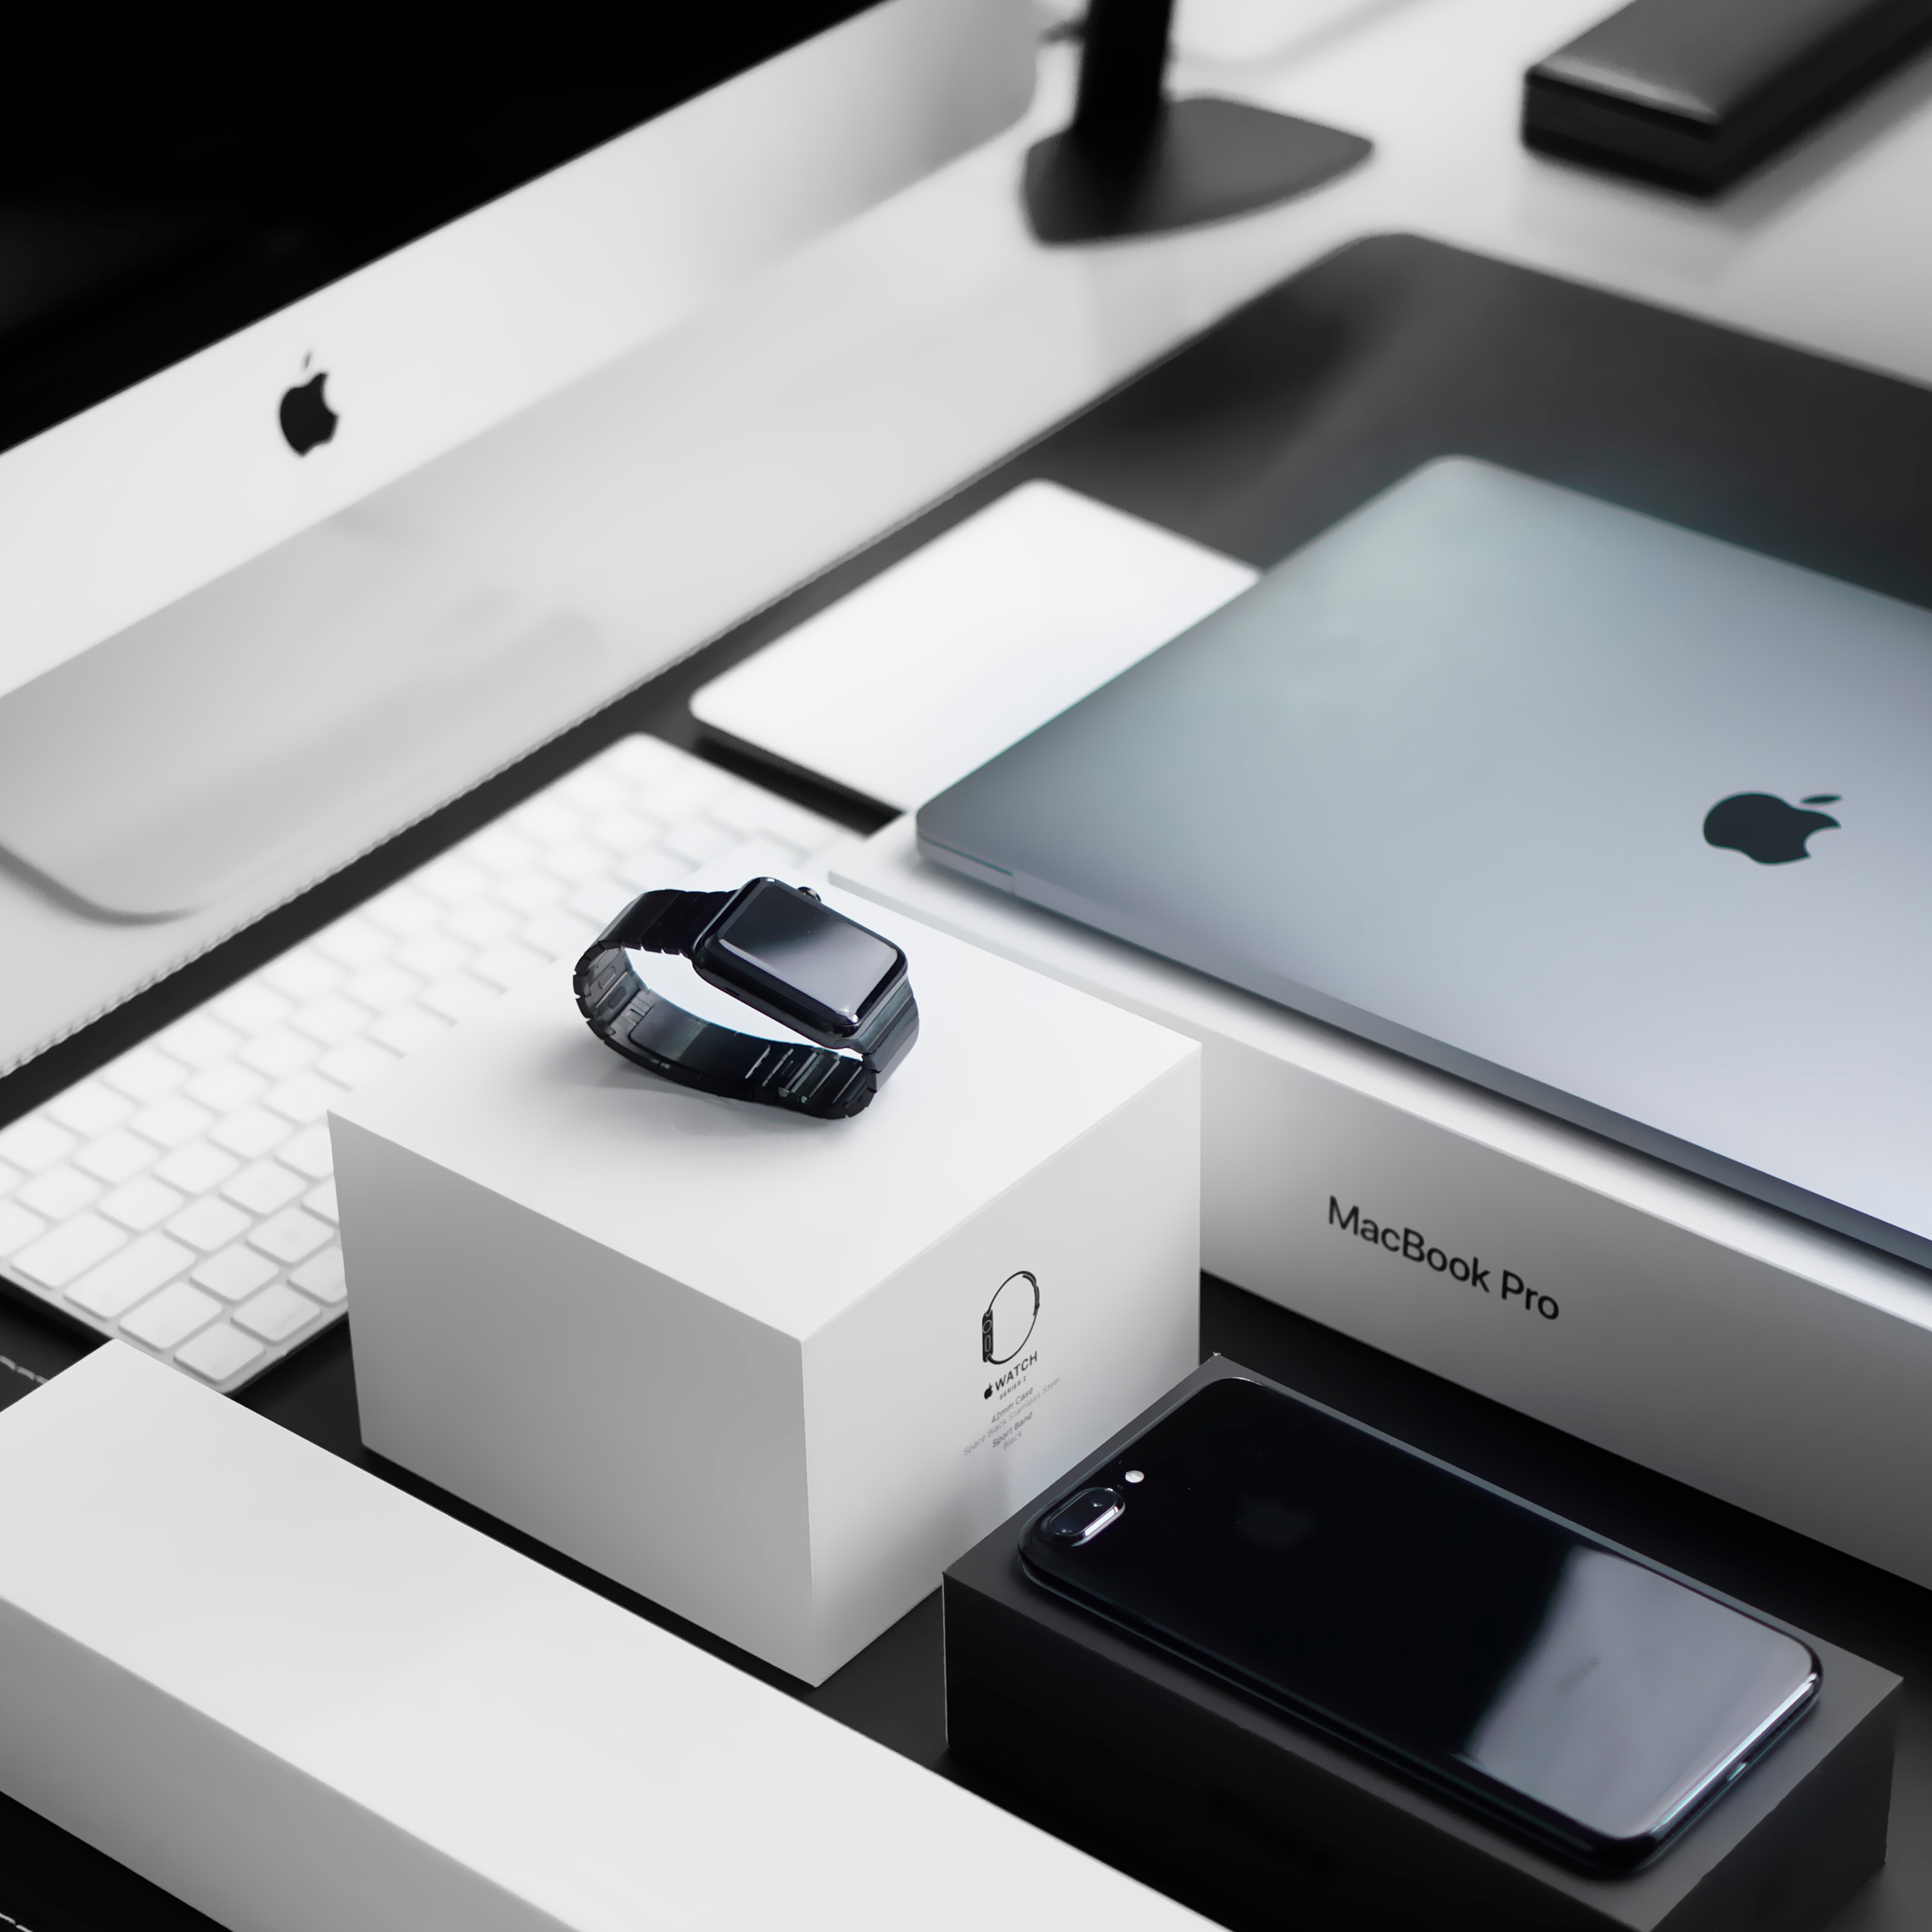 Apple products photo